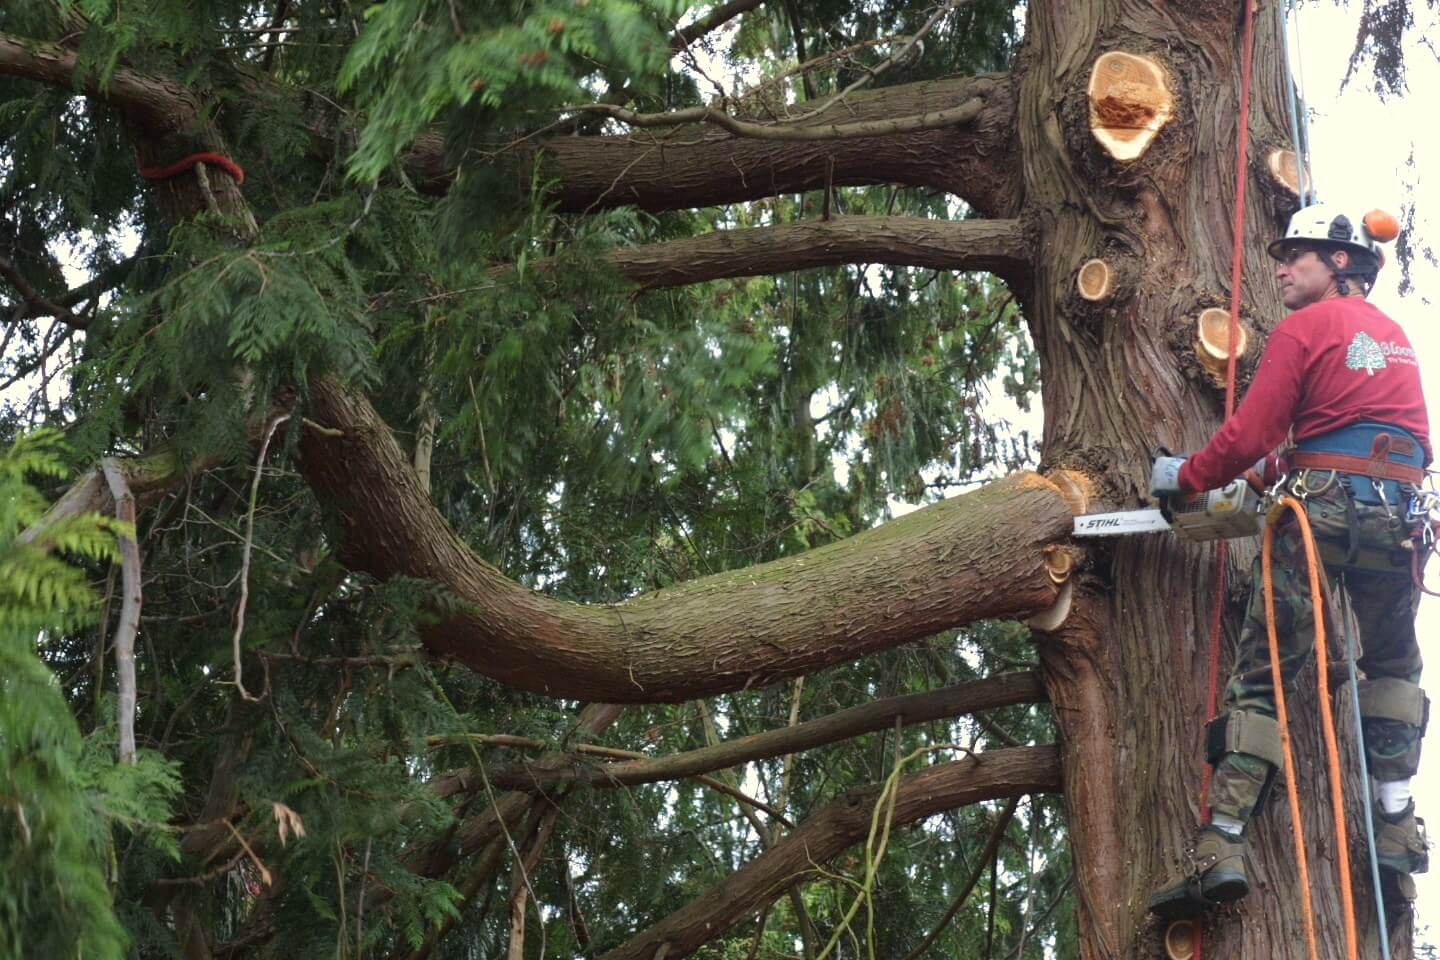 Residential Tree Trimming Services-San Diego Tree Trimming Pros & Tree Removal Services-We Offer Tree Trimming Services, Tree Removal, Tree Pruning, Tree Cutting, Residential and Commercial Tree Trimming Services, Storm Damage, Emergency Tree Removal, Land Clearing, Tree Companies, Tree Care Service, Stump Grinding, and we're the Best Tree Trimming Company Near You Guaranteed!